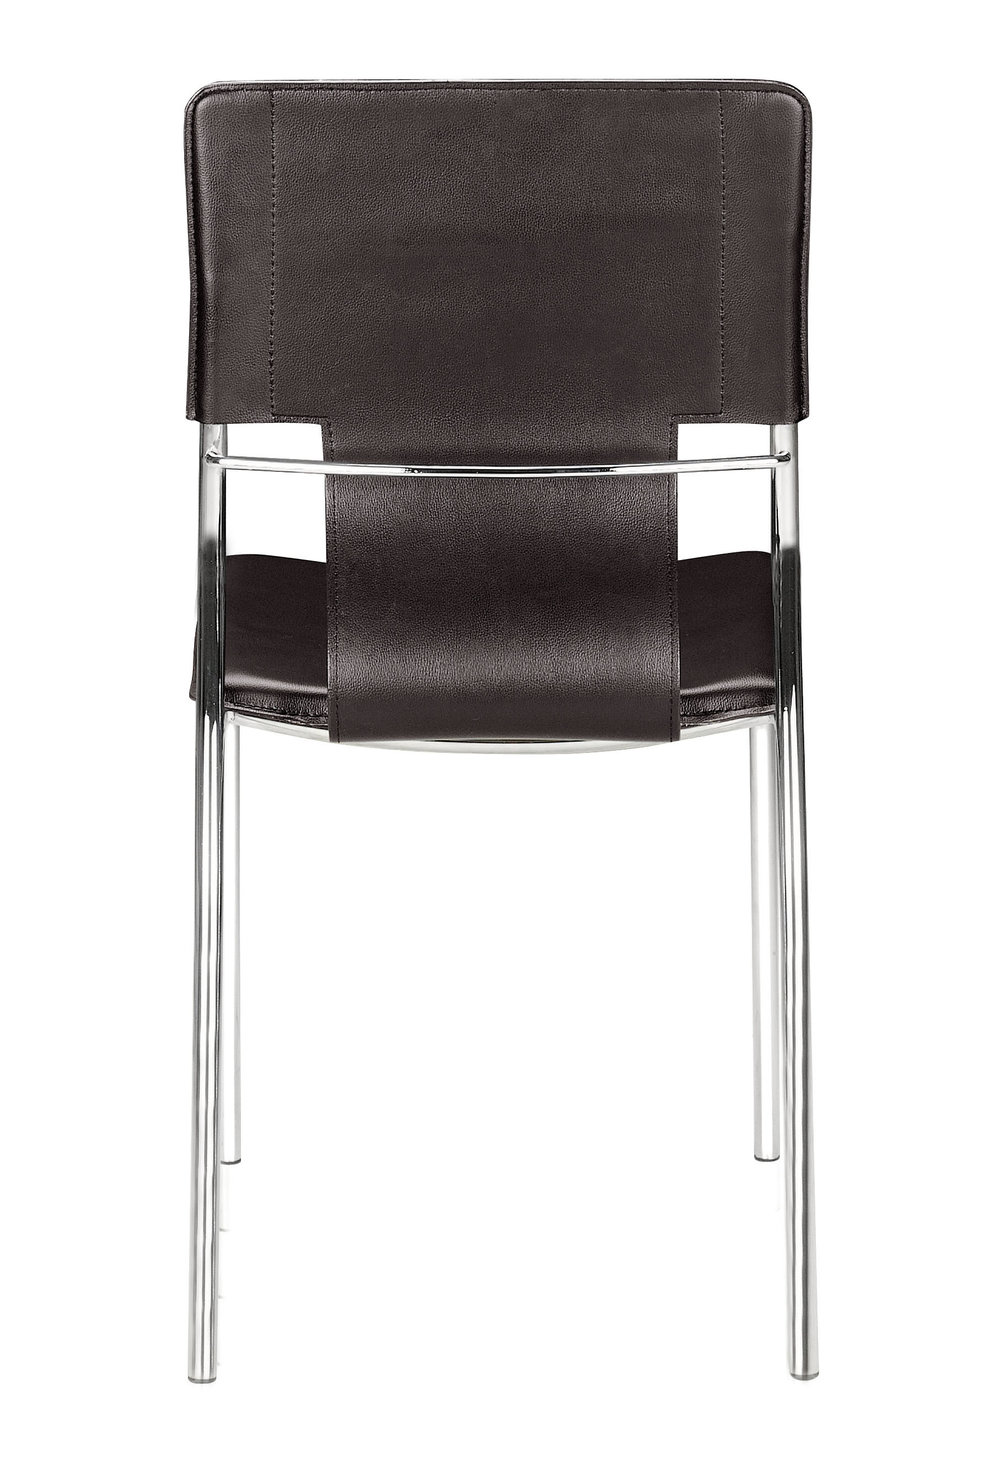 Zuo Modern Contemporary - Trafico Dining Chair - Set of 4 - Espresso